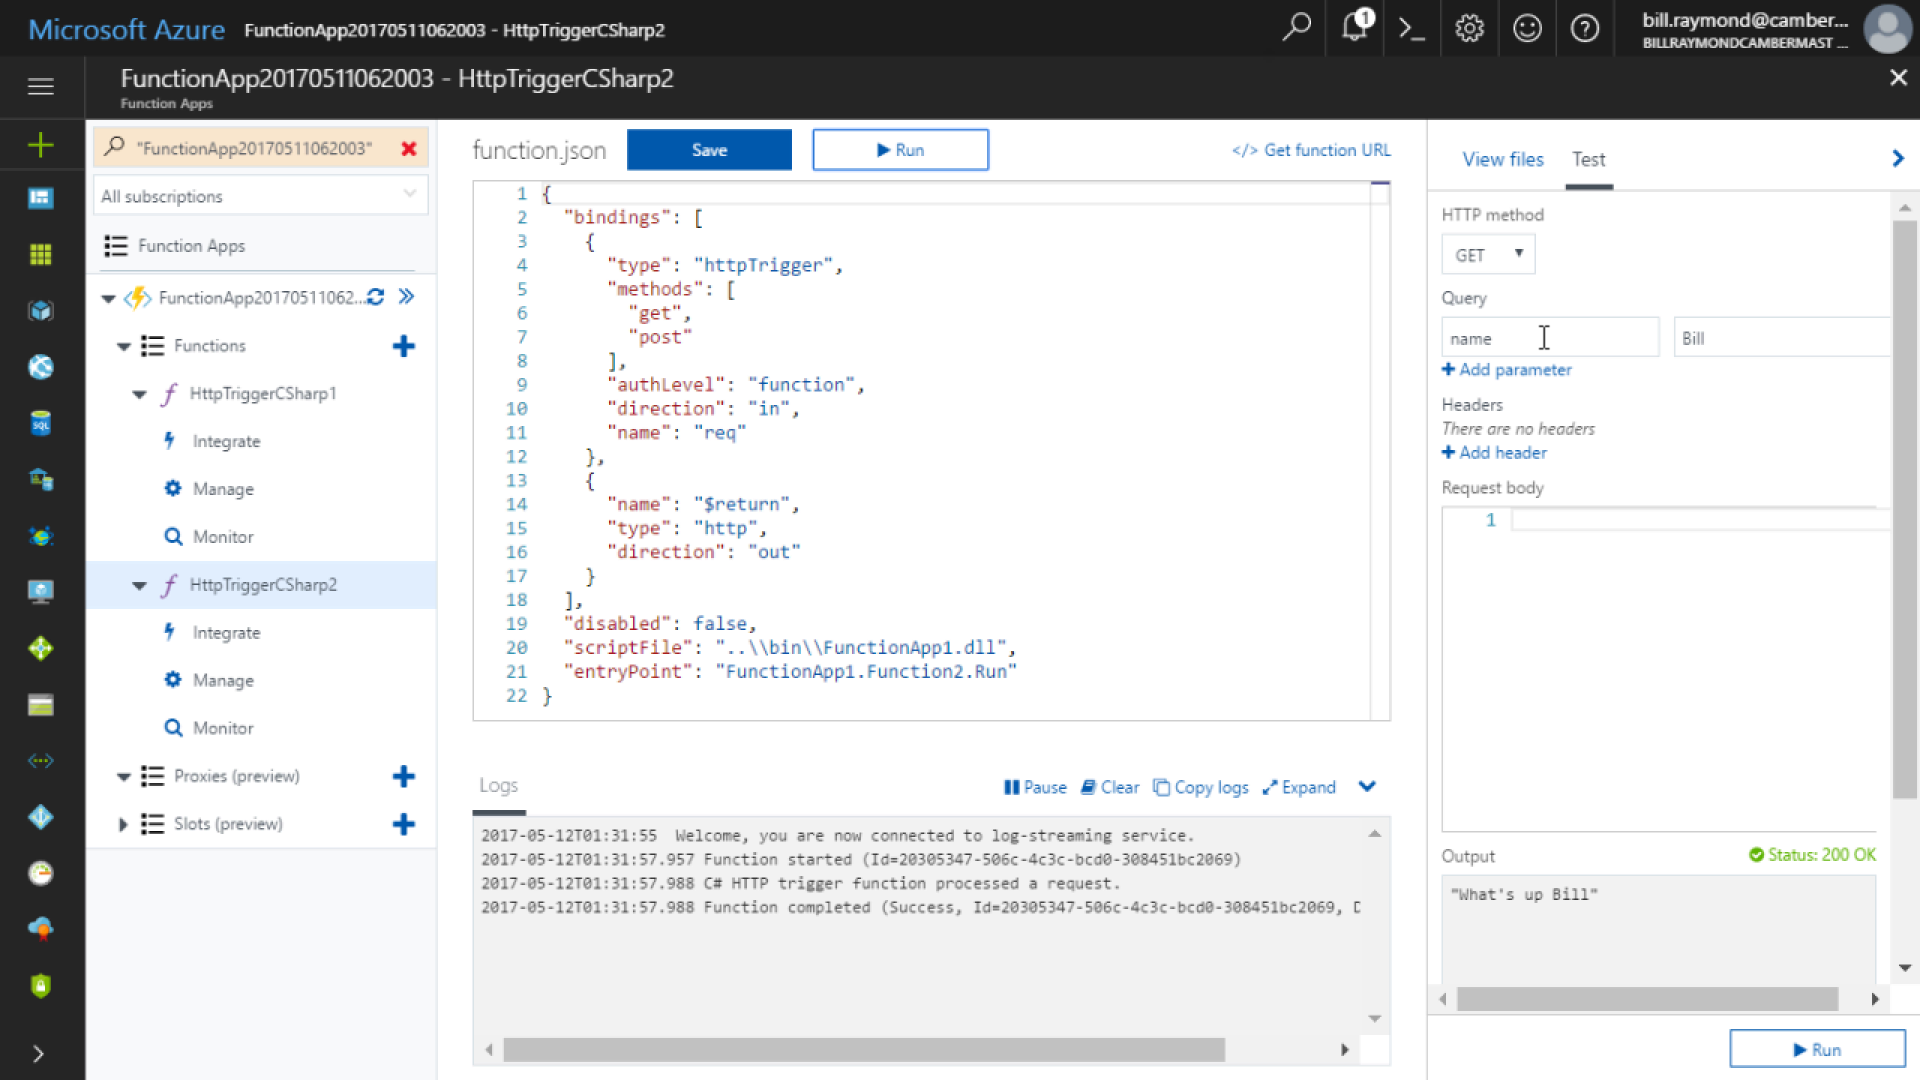 Publish Azure Functions to Azure using Visual Studio Tools